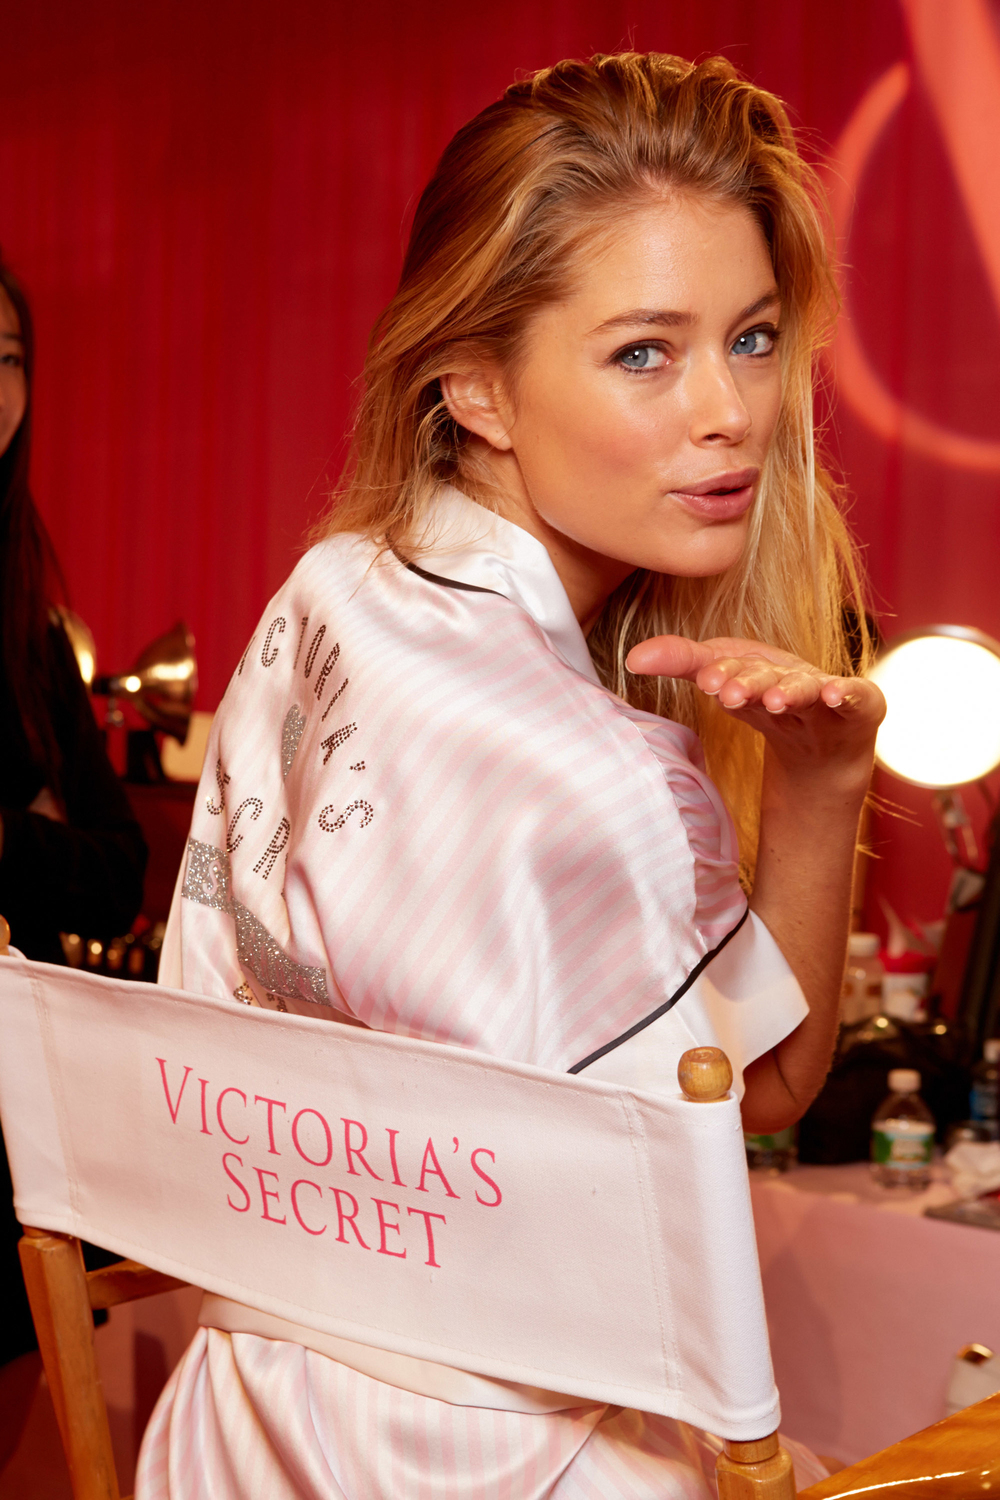 vic006com-fashion-show-media-kit-2013-doutzen-hair-makeup-backstage-victorias-secret-hi-res.jpg